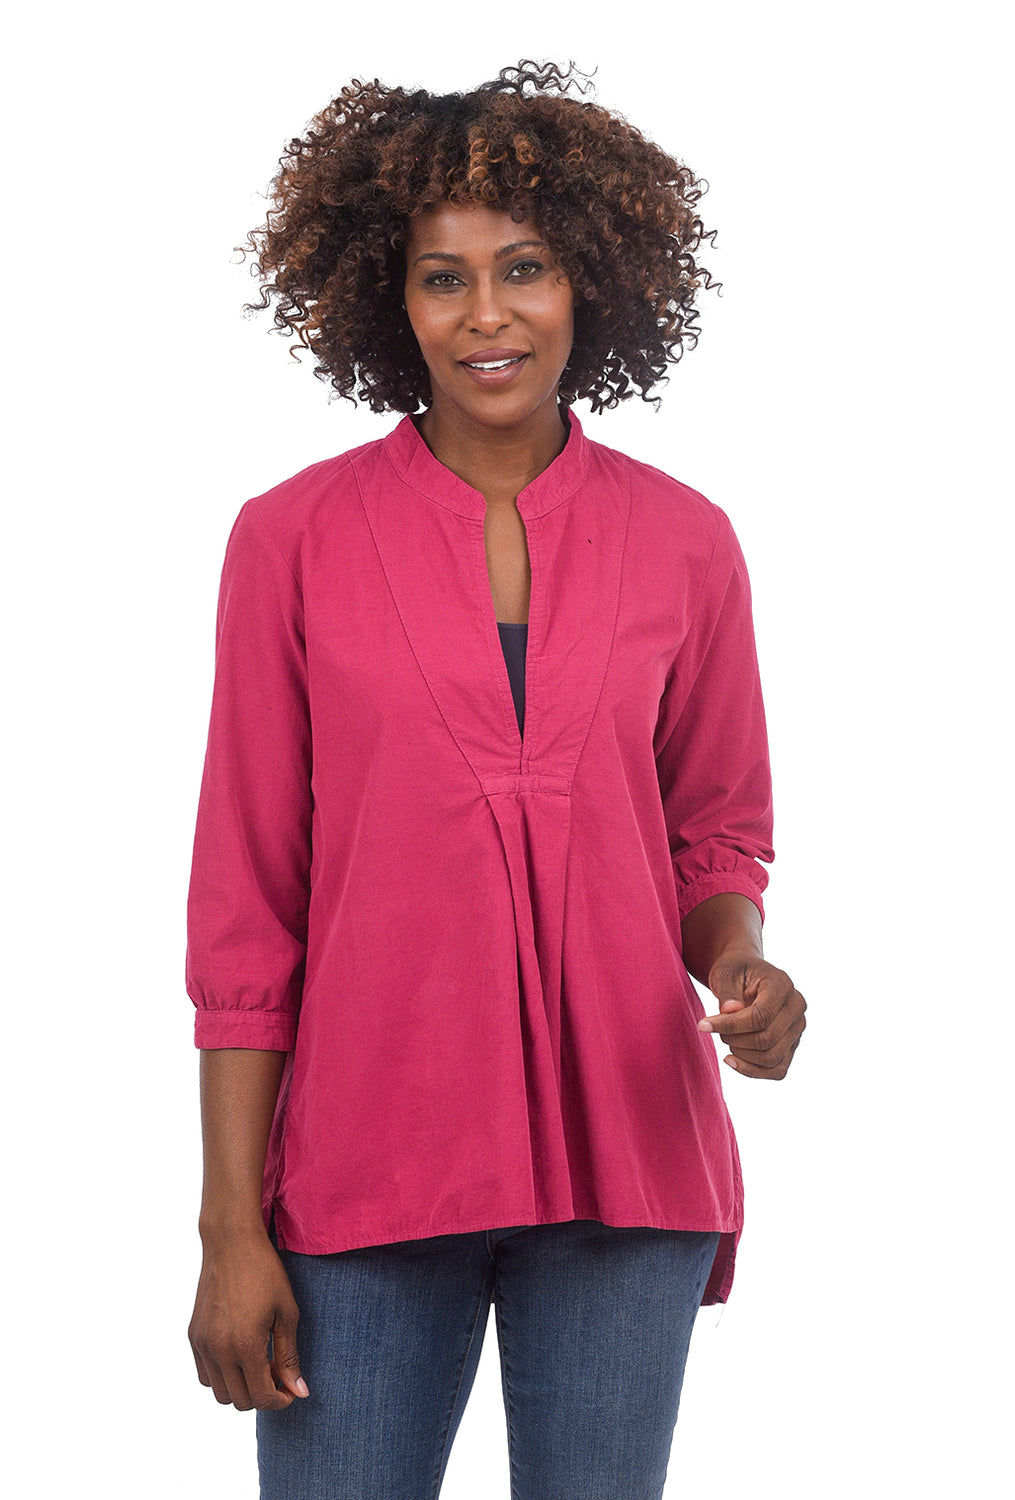 CP Shades Cord Dakota Shirt, Raspberry